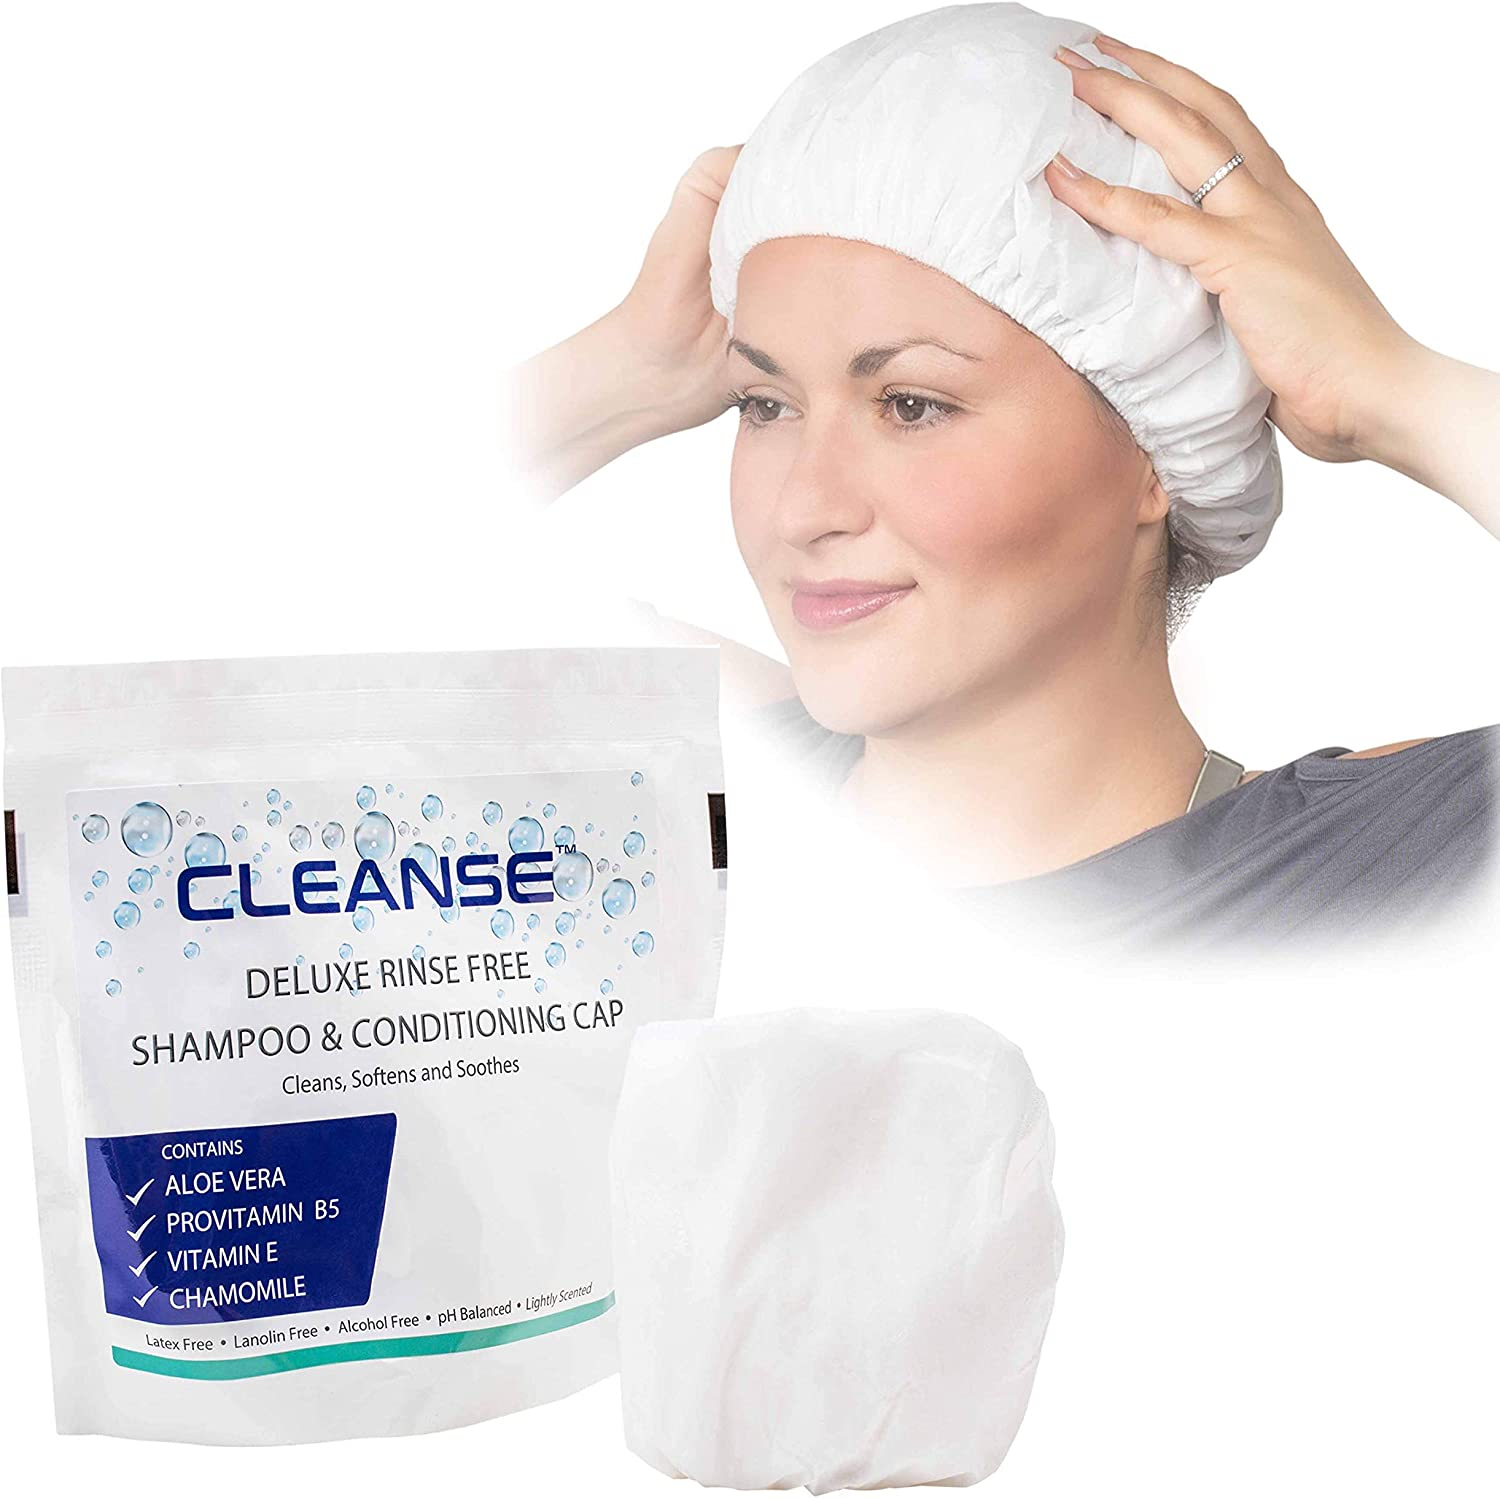 Deluxe Rinse Free Shampoo and Conditioning Cap – 5 Pack – Waterless Shampoo and Conditioning Shower Cap - Use Anytime, Anywhere – 3 Minutes - No Water Wash - Cleanse